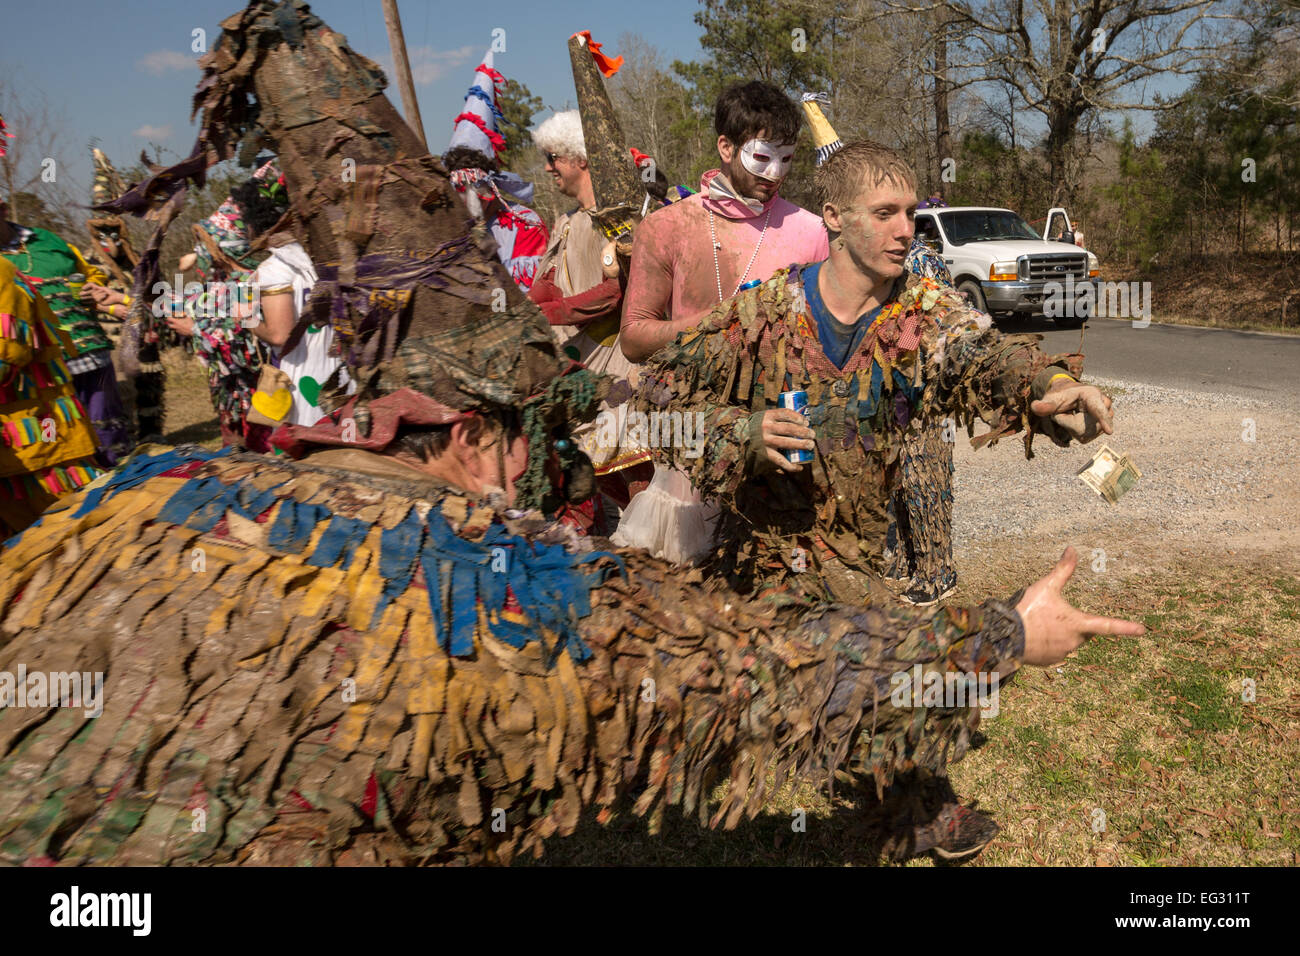 Revelers chase a dollar bill during the traditional Cajun Courir de Mardi Gras February 14, 2015 in Elton, Louisiana. - Stock Image